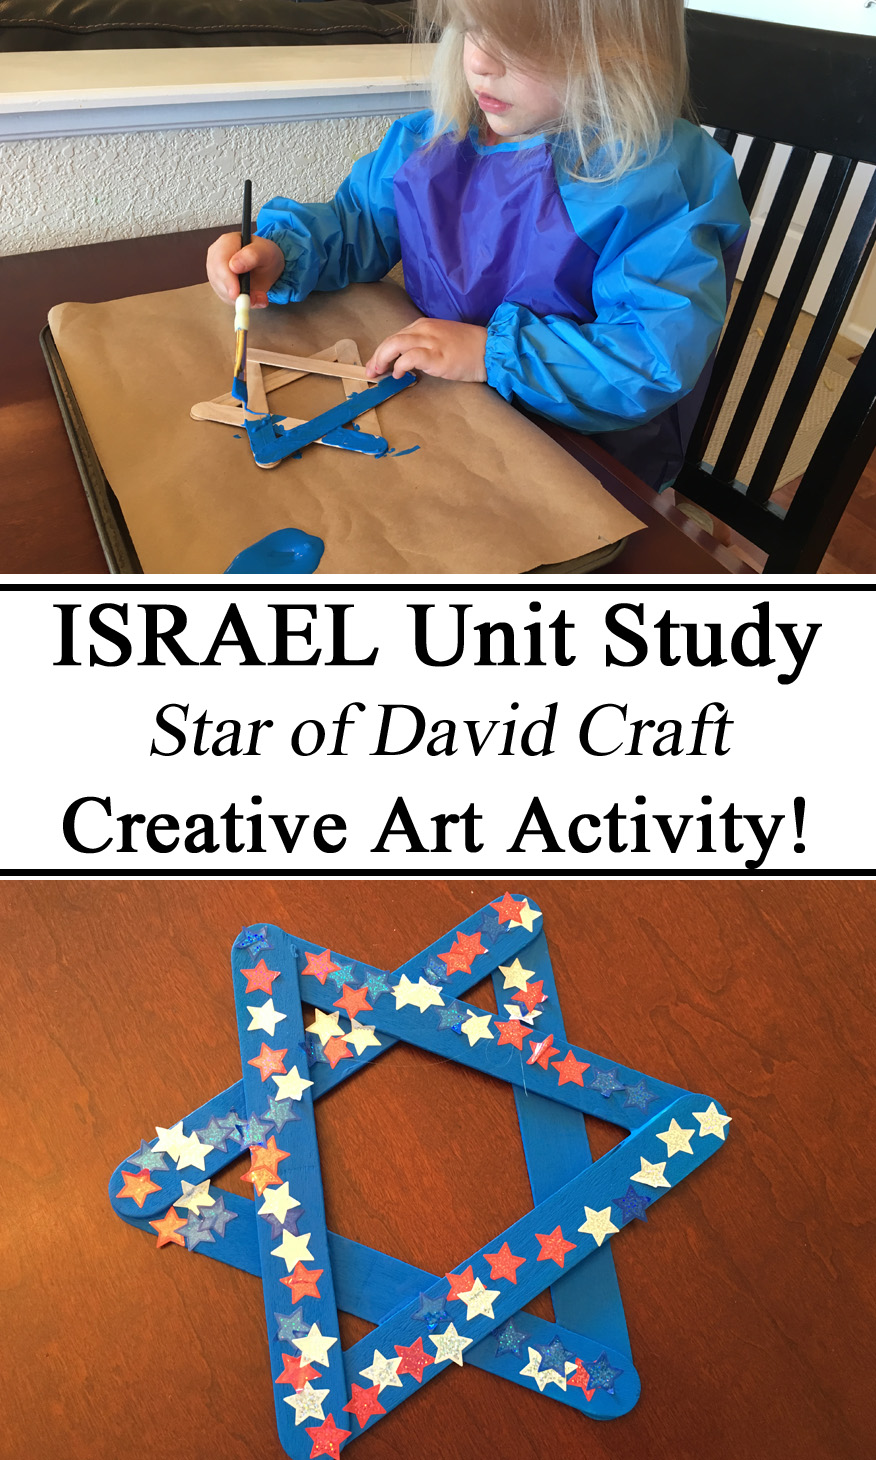 Hands on Learning, Arts & Crafts, Activity for Kids, Popsicle Stick Craft, Homeschooling, Homeschool, Hanukkah, Homeschooling Ideas, Preschool, Preschool crafts, Kindergarten, Kindergarten Activities, Holiday Theme Projects